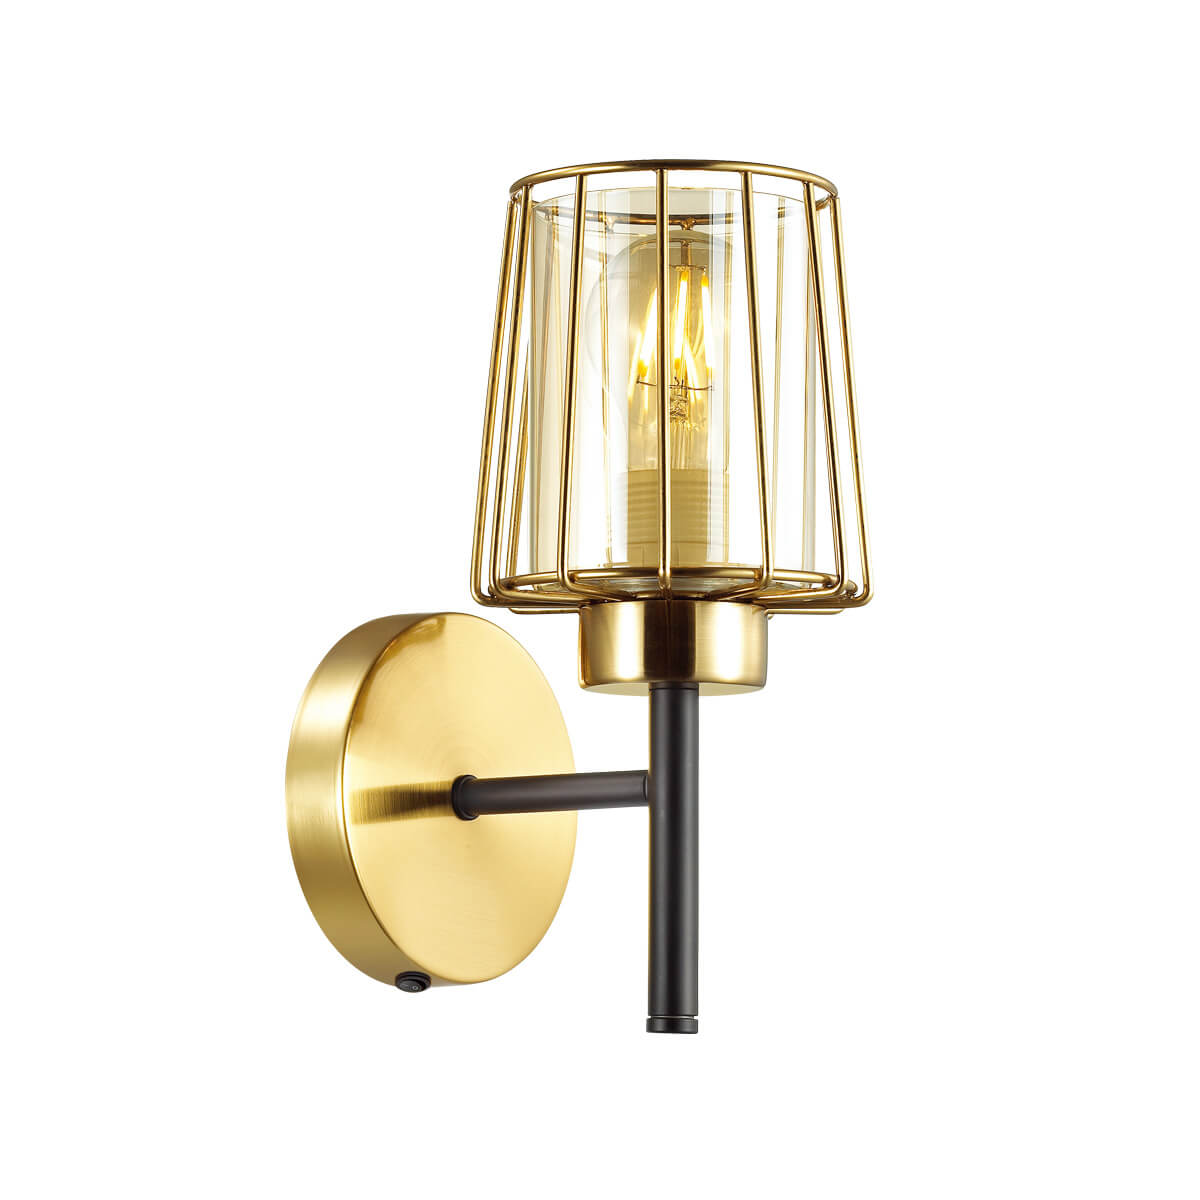 Бра Odeon Light 4656/1W Country odeon 2927 1w